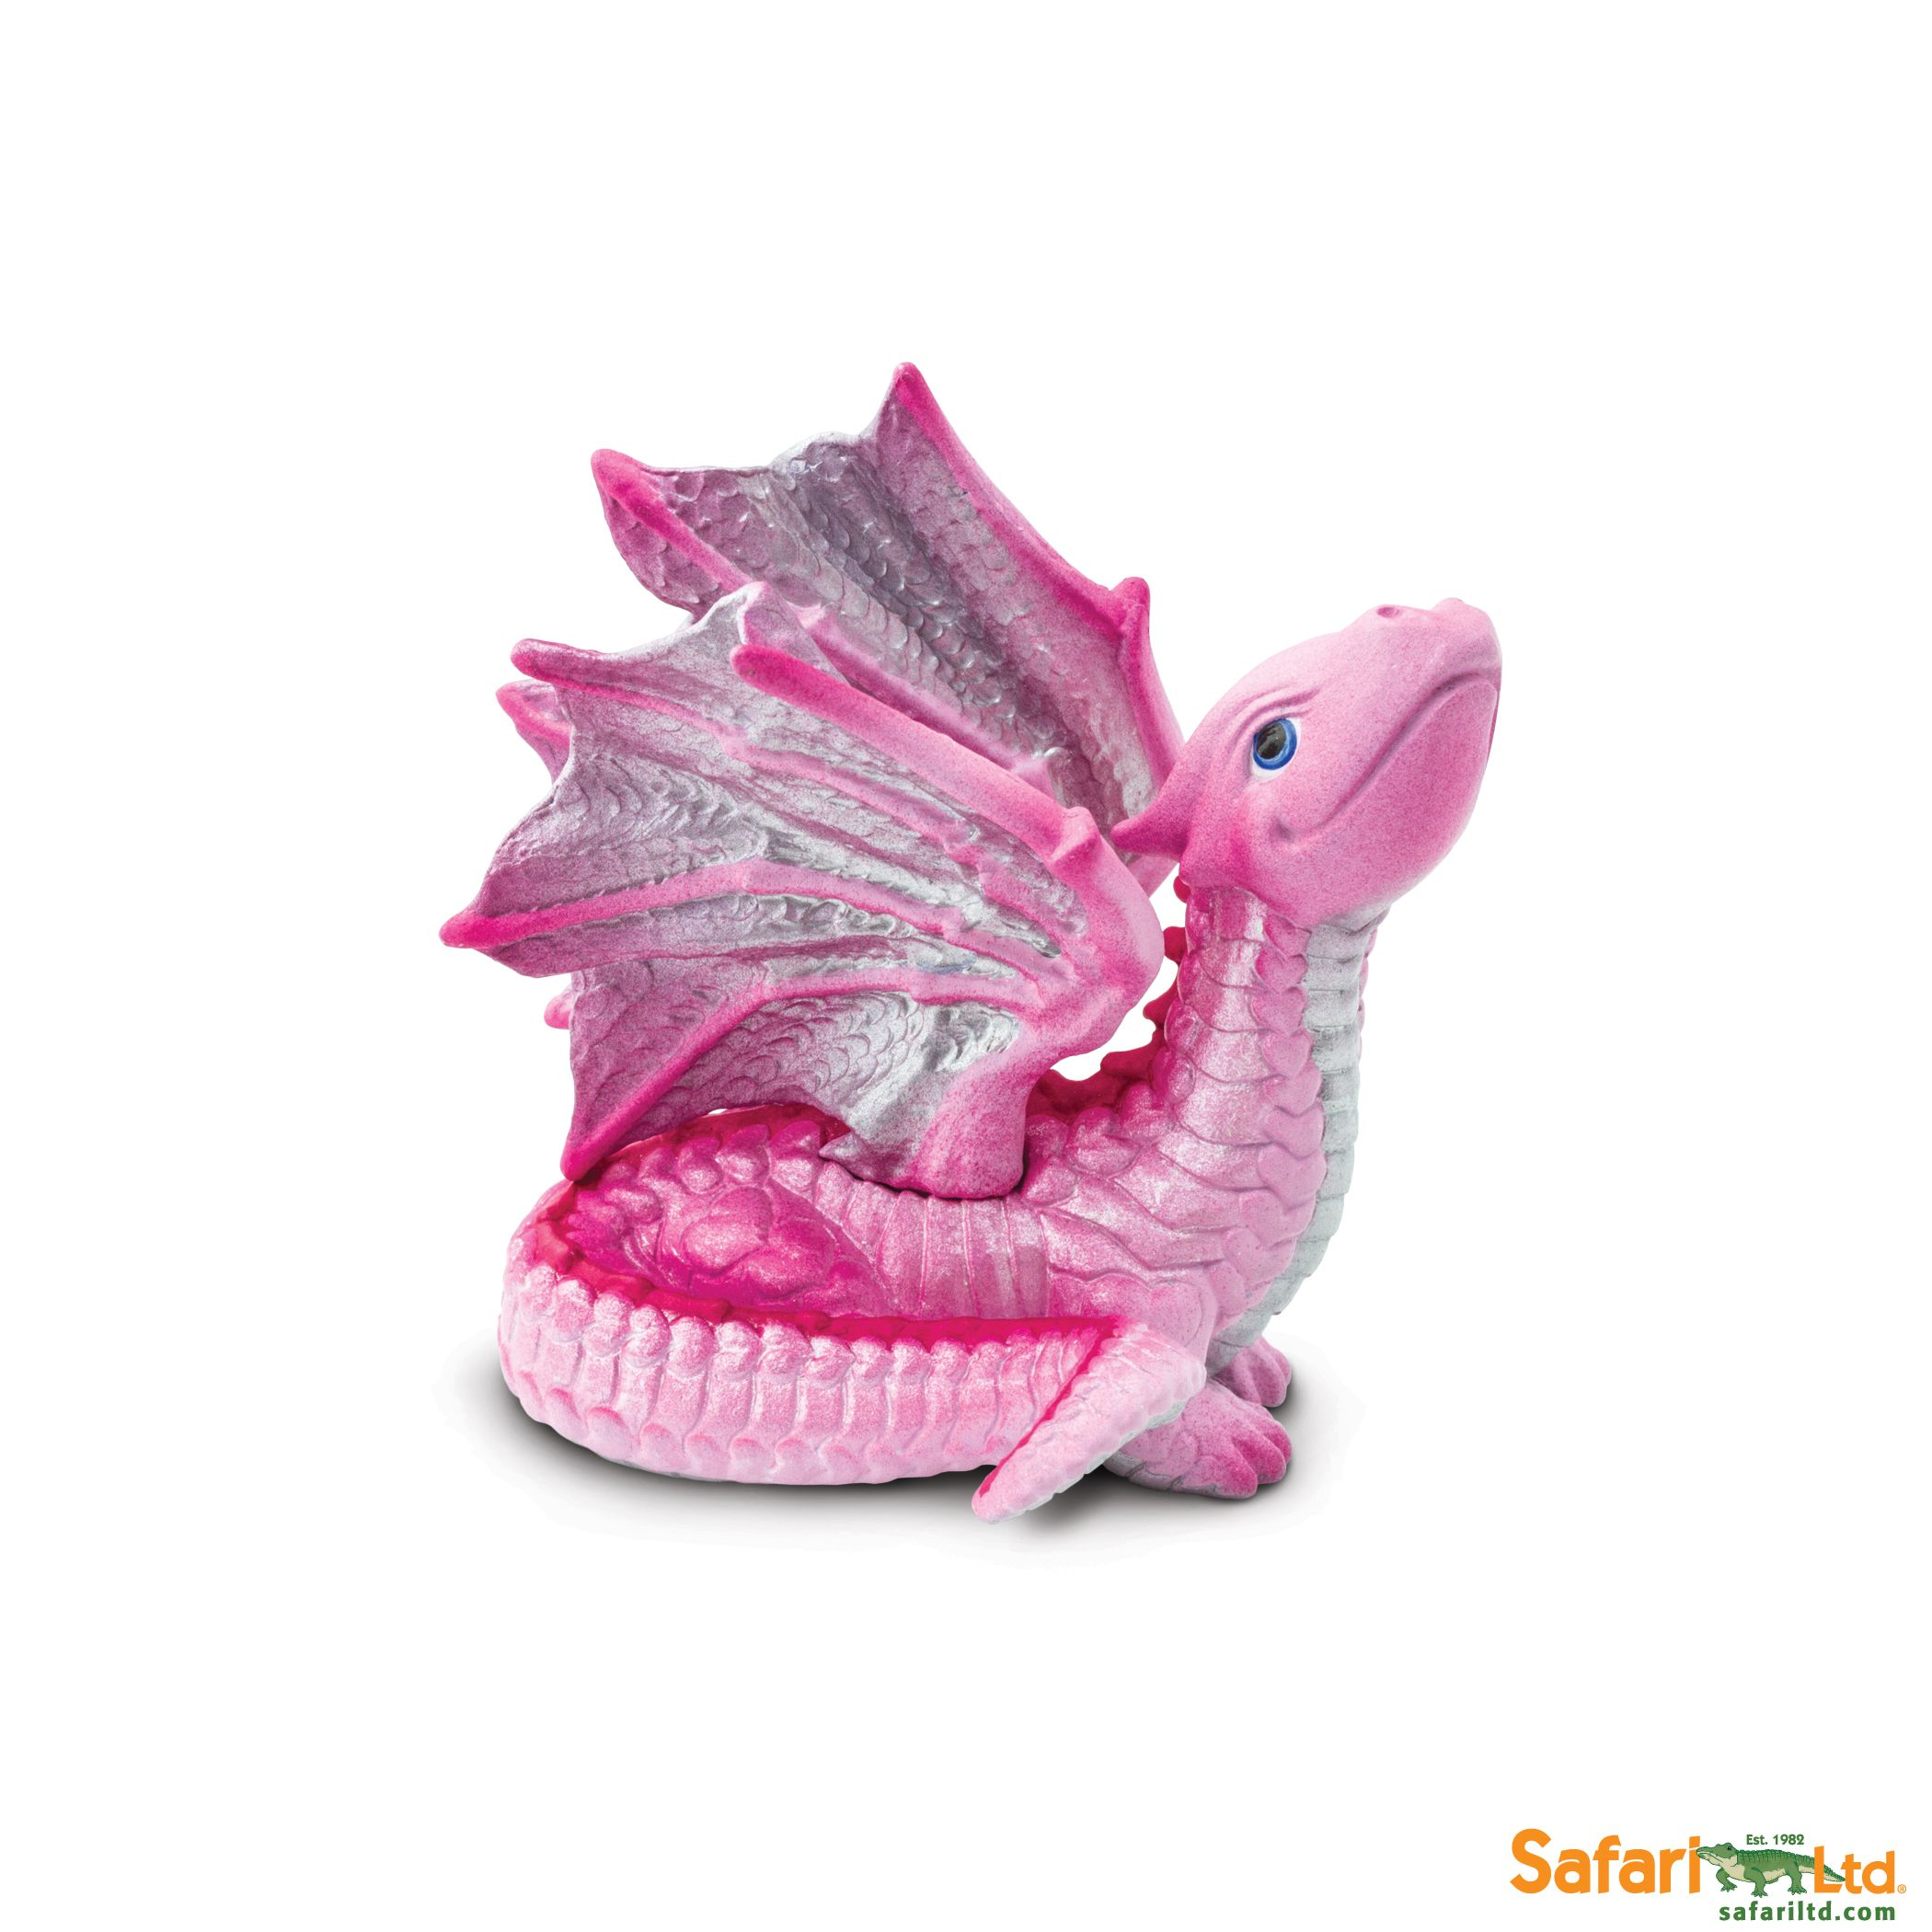 Safari Ltd Baby Love Dragon, Action & Toy Figures Baby